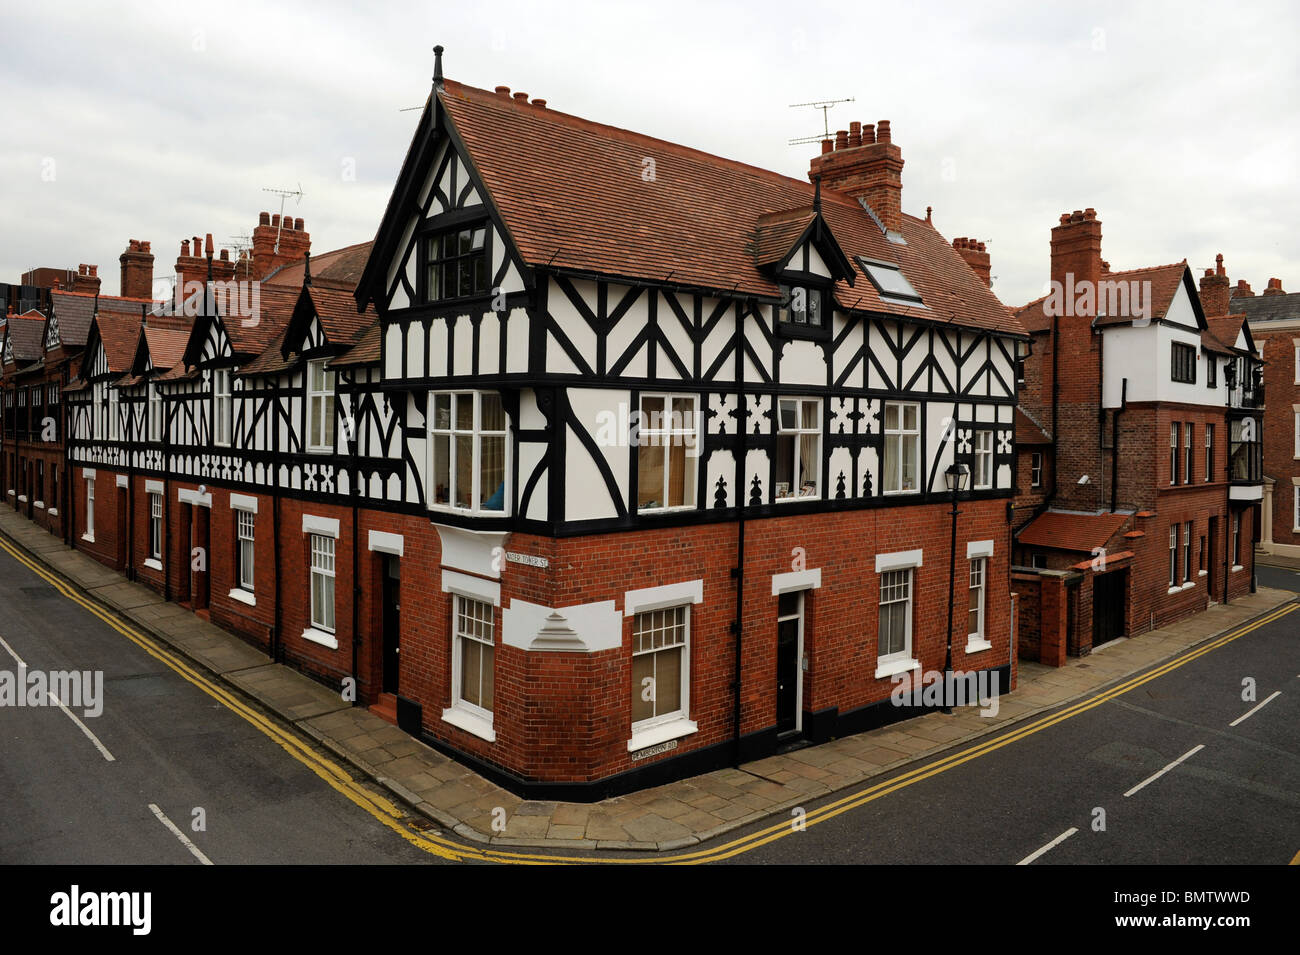 Image result for half timber and brick